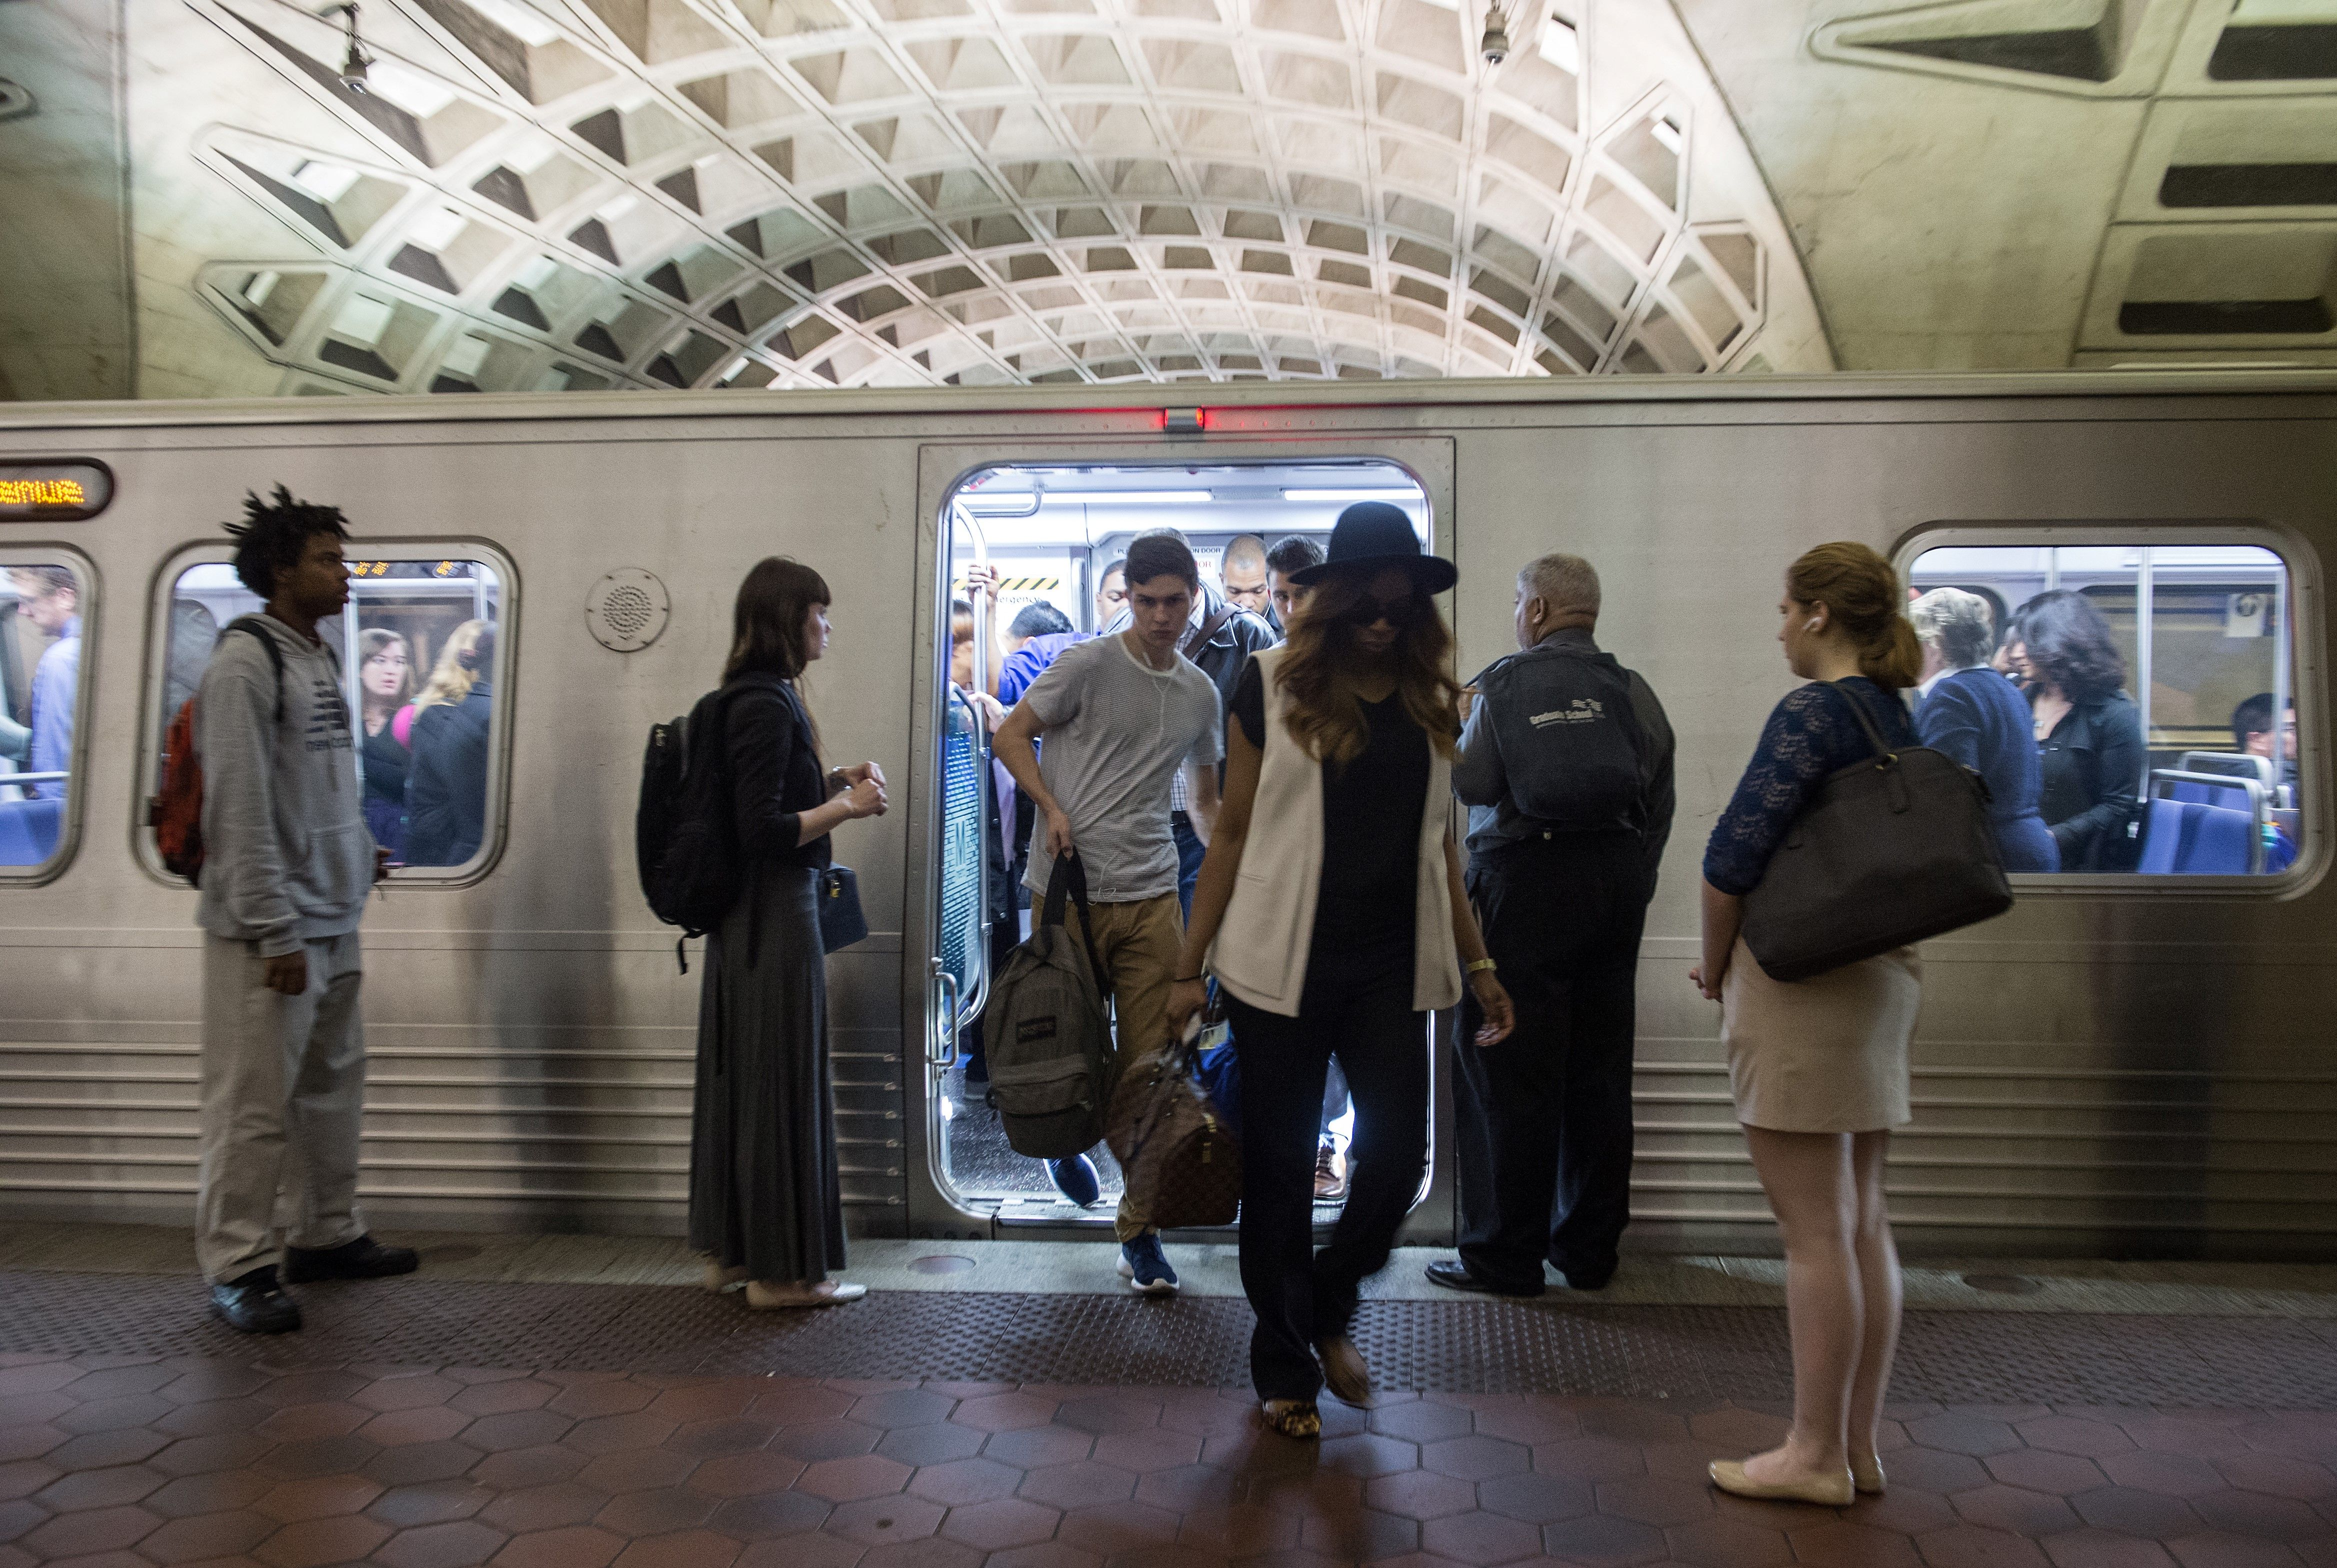 Commuters get off a Metro train as others wait to go aboard at the L'Enfant Plaza station in Washington, DC, on May 24, 2016. (Photo: NICHOLAS KAMM/AFP/Getty Images)